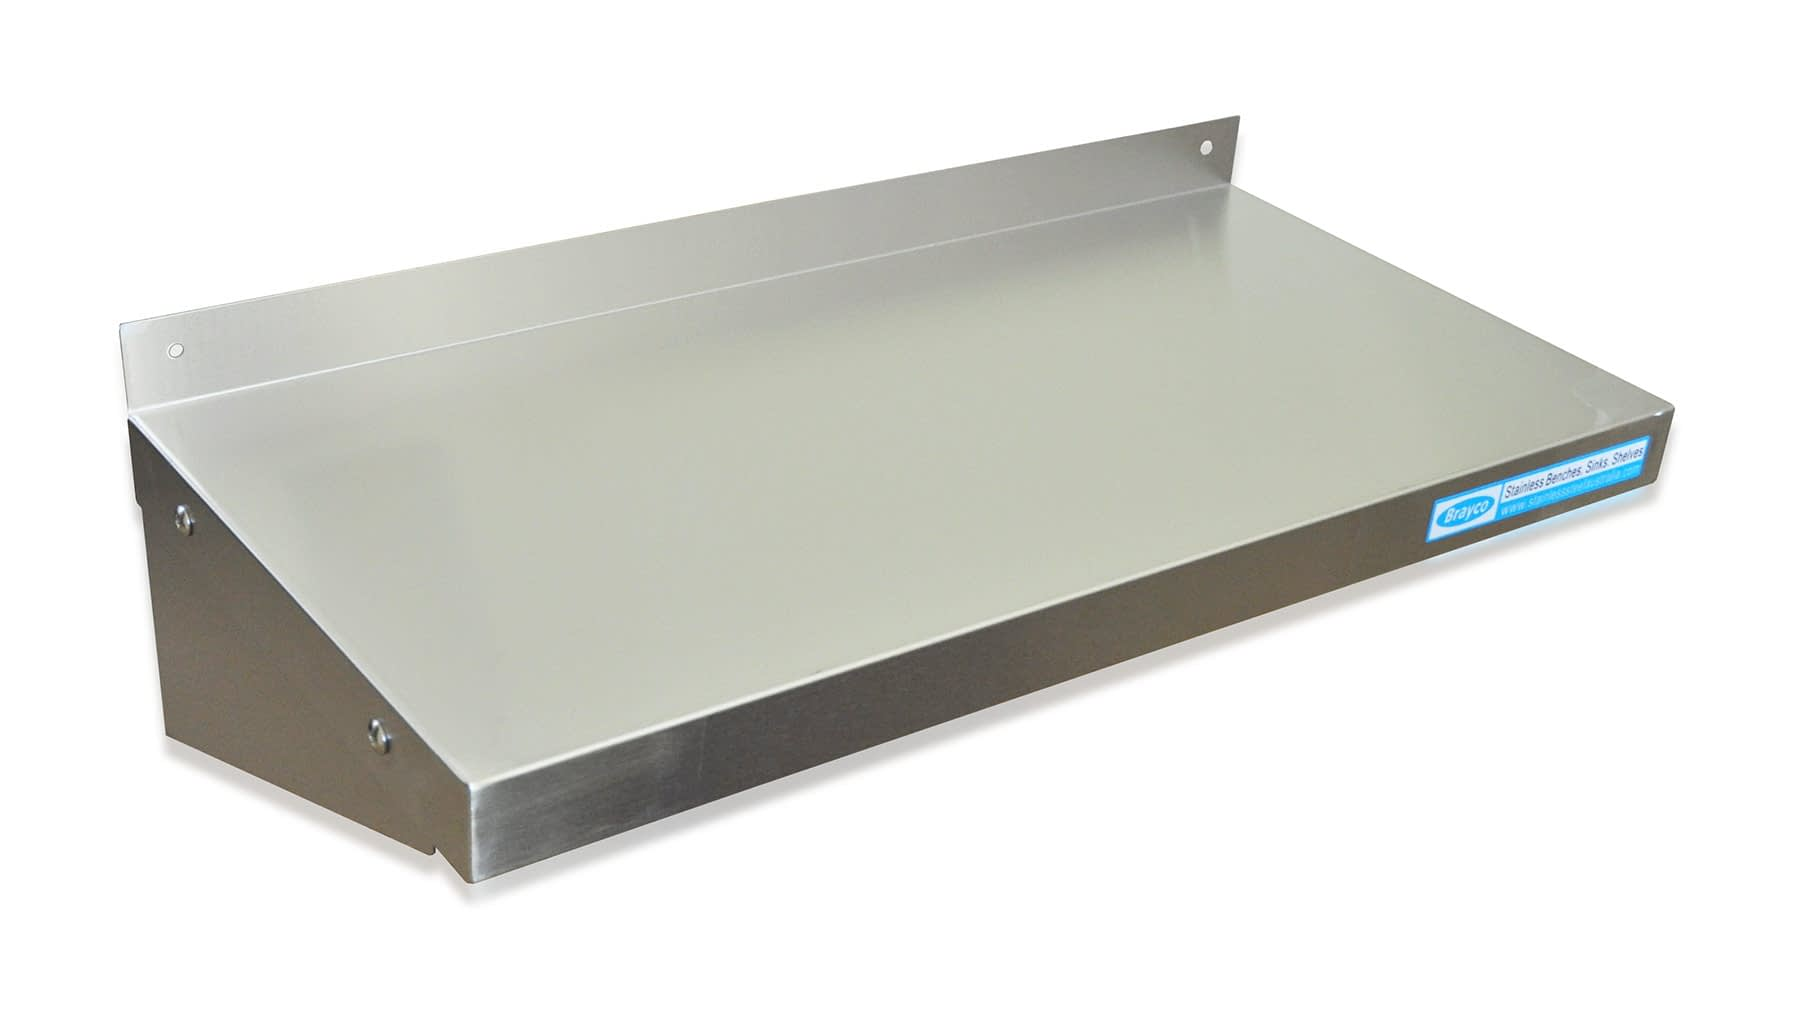 Stainless Steel Solid Wall Shelf, 600 X 300mm deep